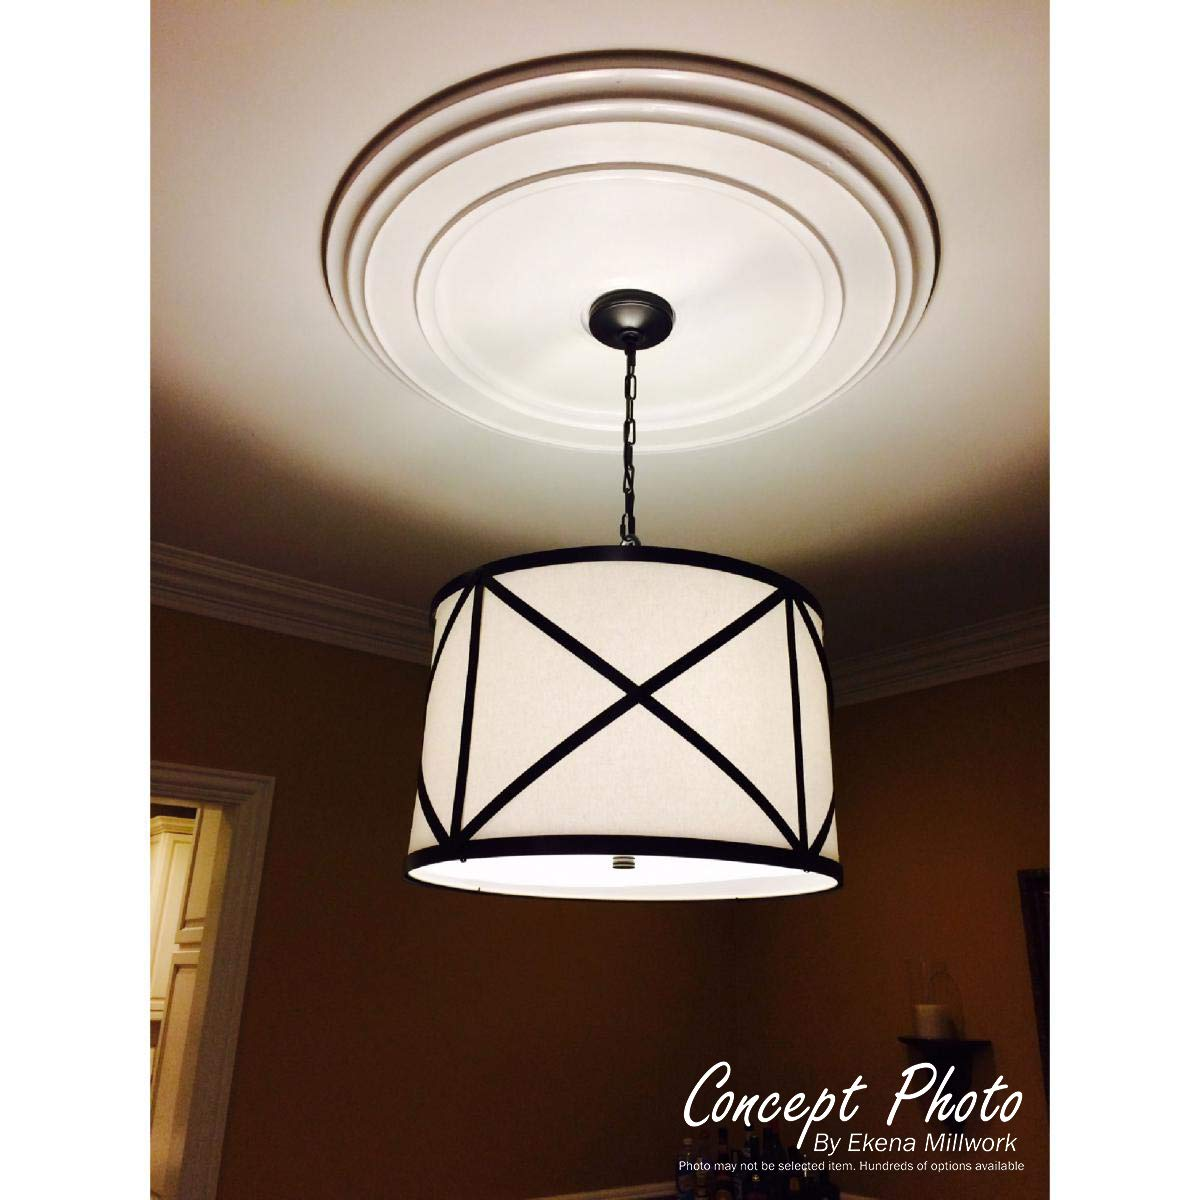 Ekena Millwork CM26HUSGS 22 1/8'' OD x 7 ID x 1 3/4'' P Hurley Ceiling Medallion (fits Canopies up to 7 1/4''), Hand-Painted, Steel Gray by Ekena Millwork (Image #3)